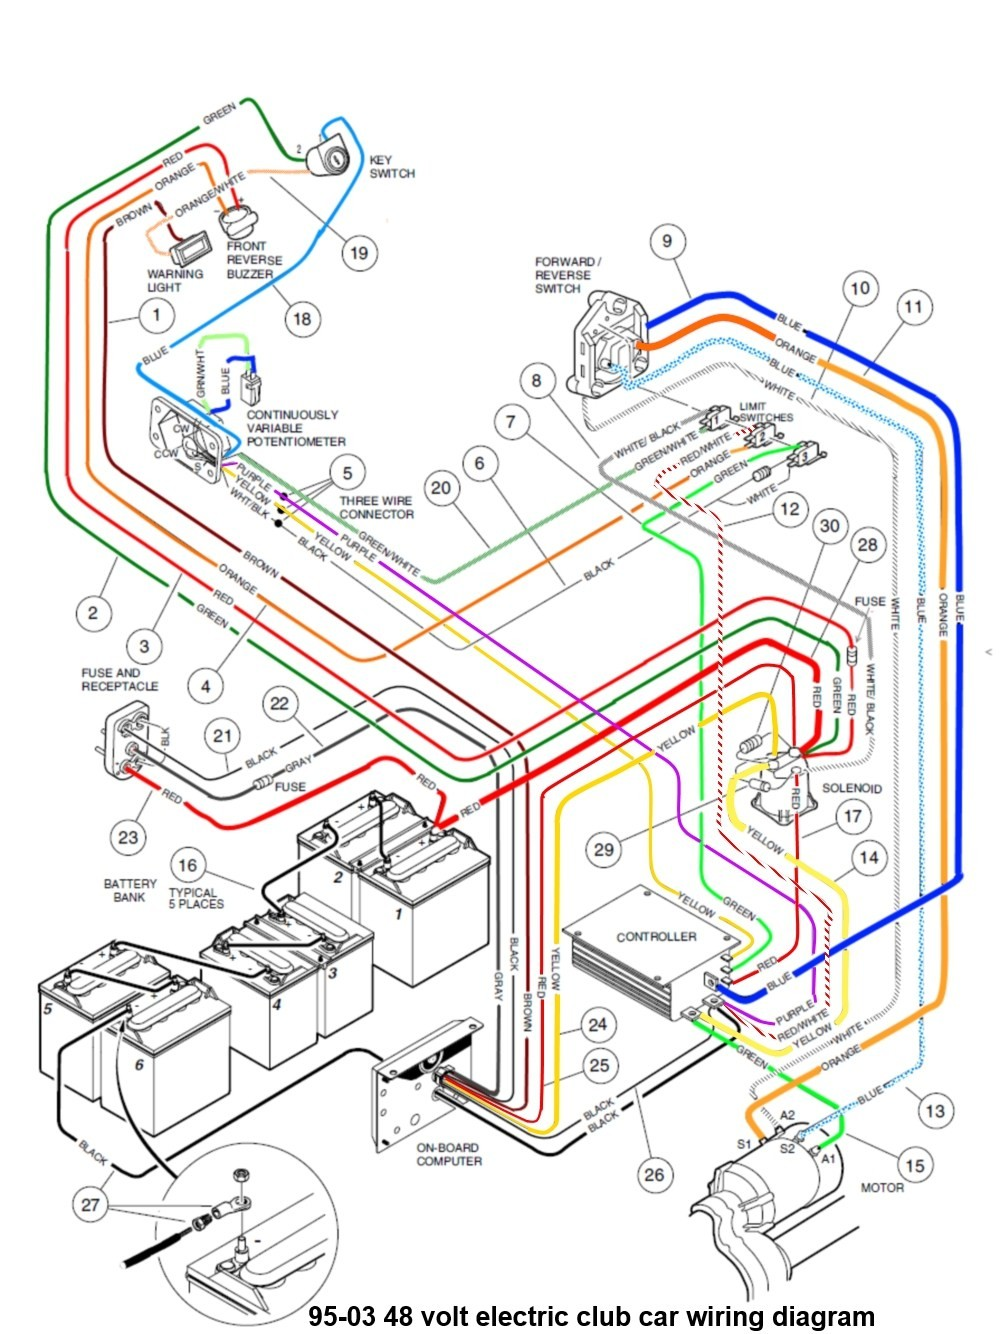 AC700C0 Electric Club Car Ds Wiring Diagram 94 | Wiring LibraryWiring Library